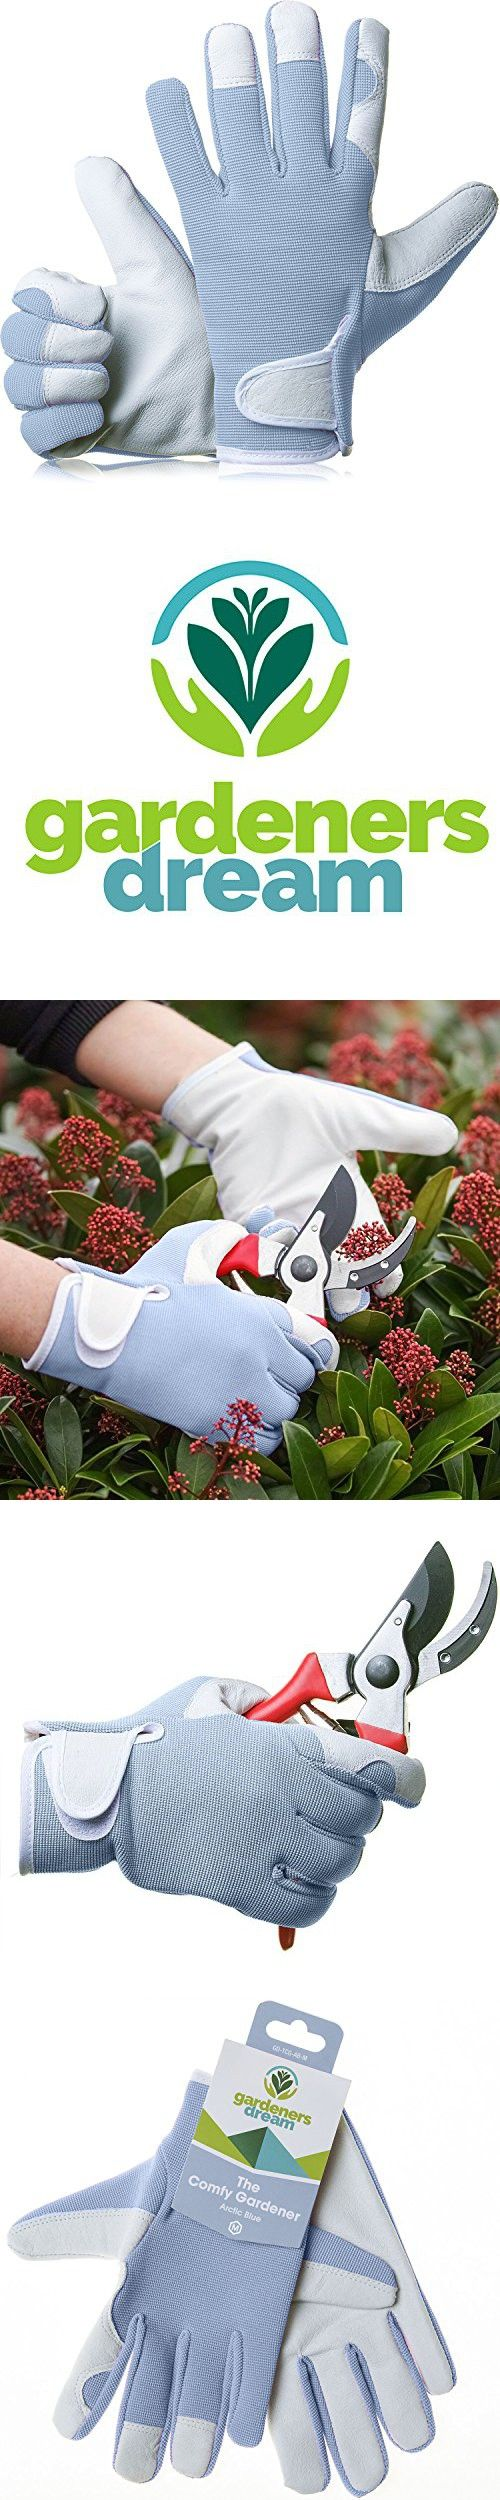 Leather work gloves ebay - Gardenersdream Leather Gardening Work Gloves Medium Comfy Slim Fit Premium Quality Gloves